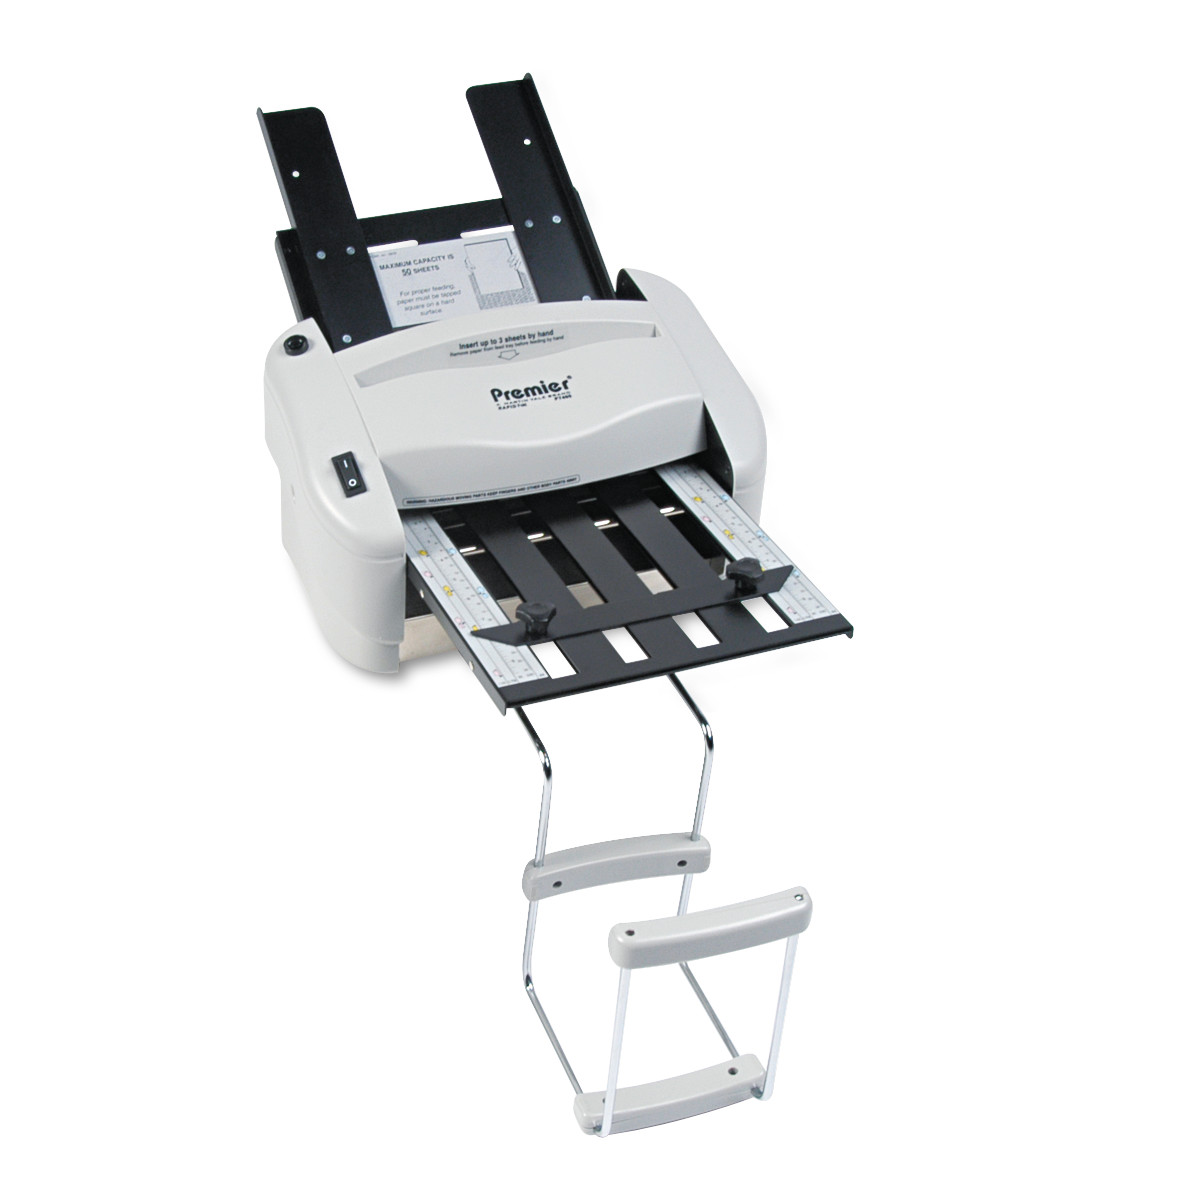 Martin Yale Model P7400 RapidFold Light-Duty Desktop AutoFolder, 4000 Sheets/Hour